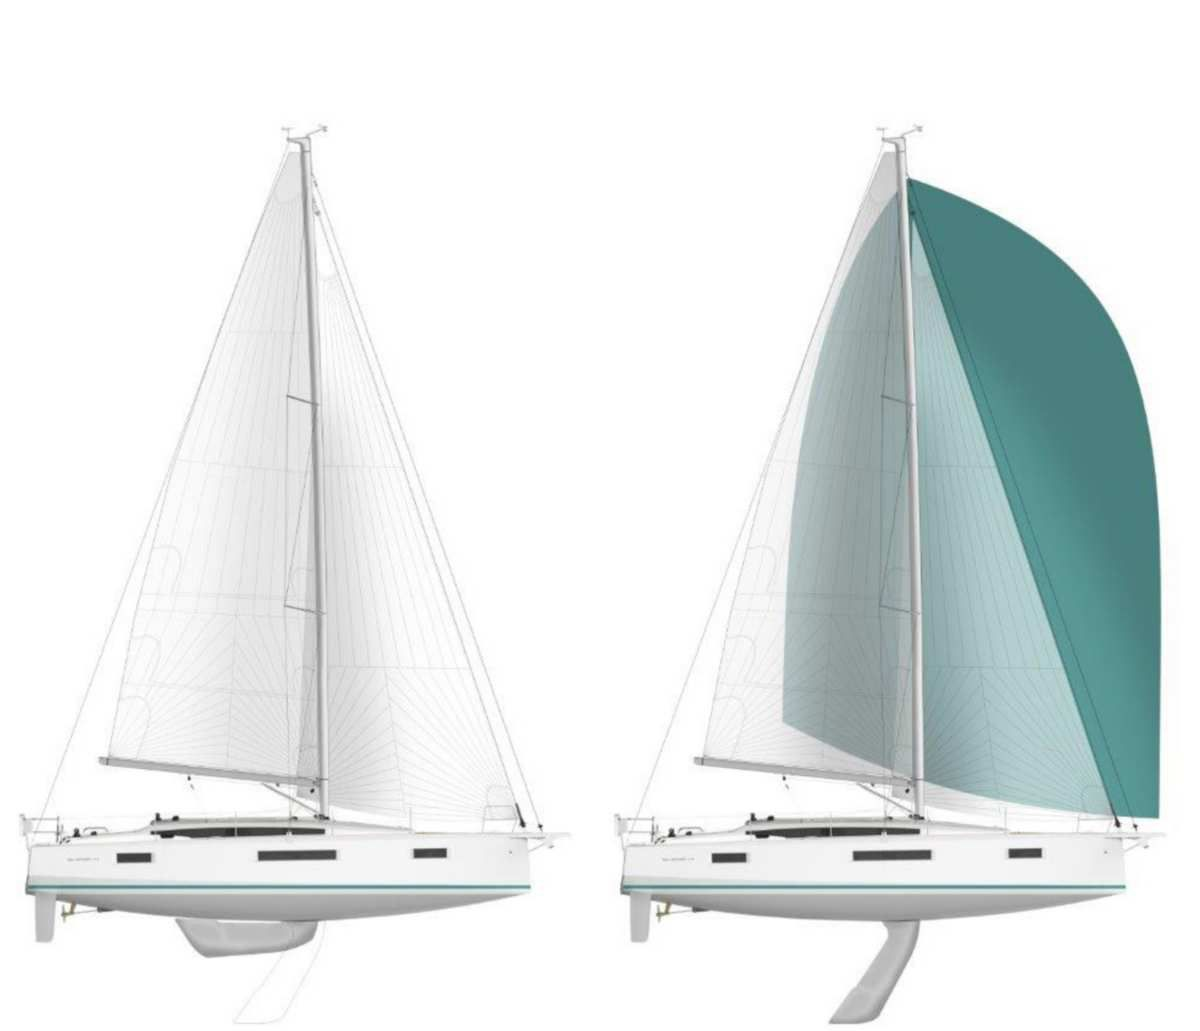 New - a swing keel for the Jeanneau Sun Odyssey 410